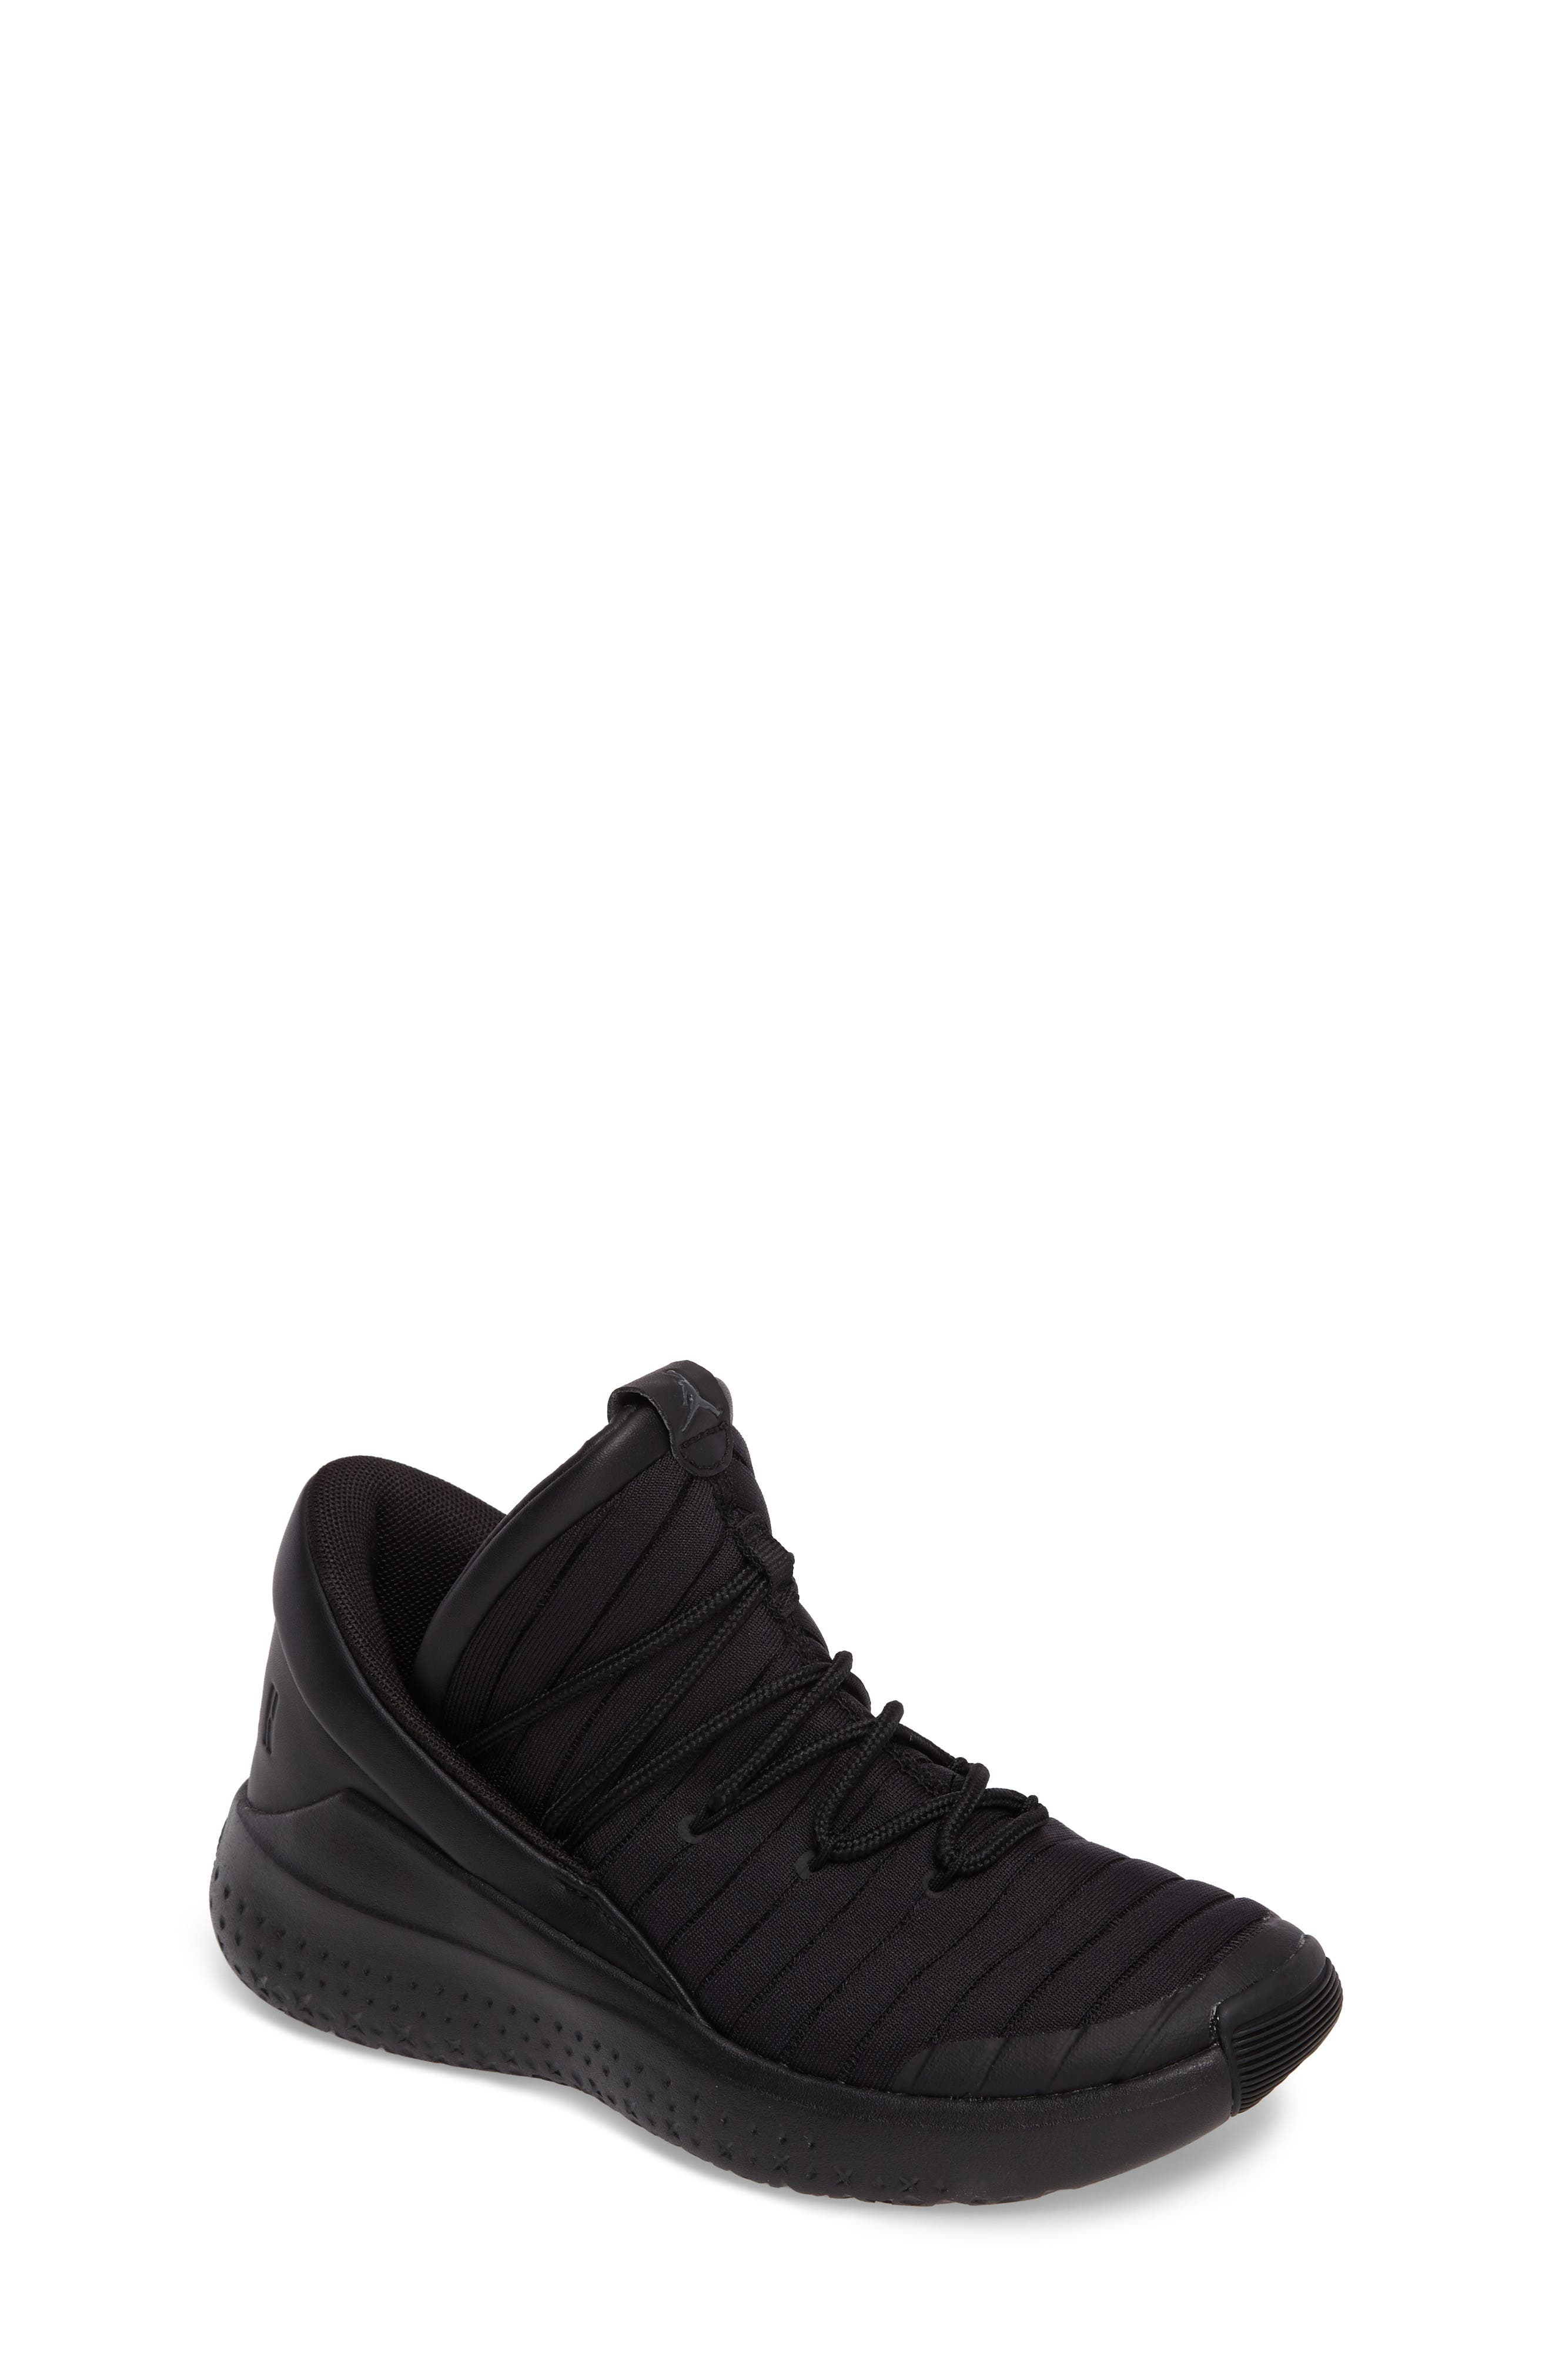 Flight Luxe Sneaker,                         Main,                         color, 011